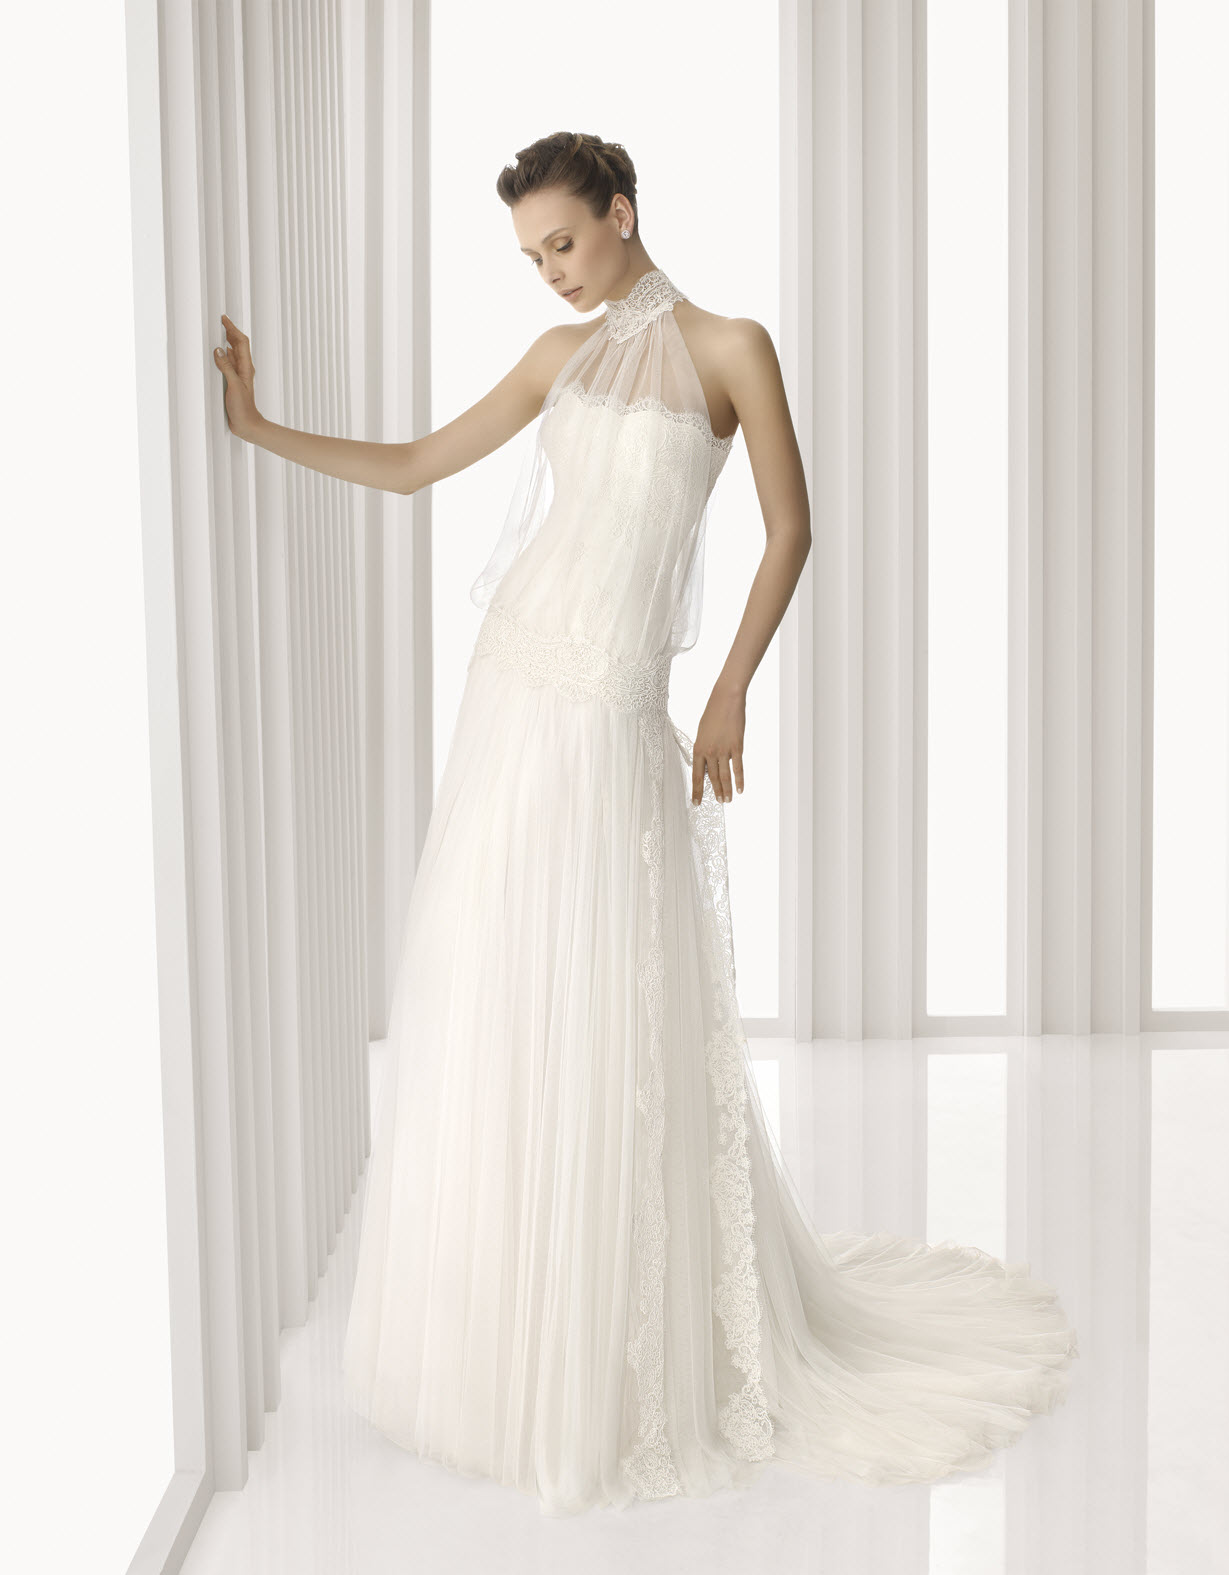 Look at high neck wedding gowns available in long & short styles. Looking for high neck wedding dresses to create an elegant look on your big day? Look at high neck wedding gowns available in long & short styles. Message Dialog. Close. Display Update Message.